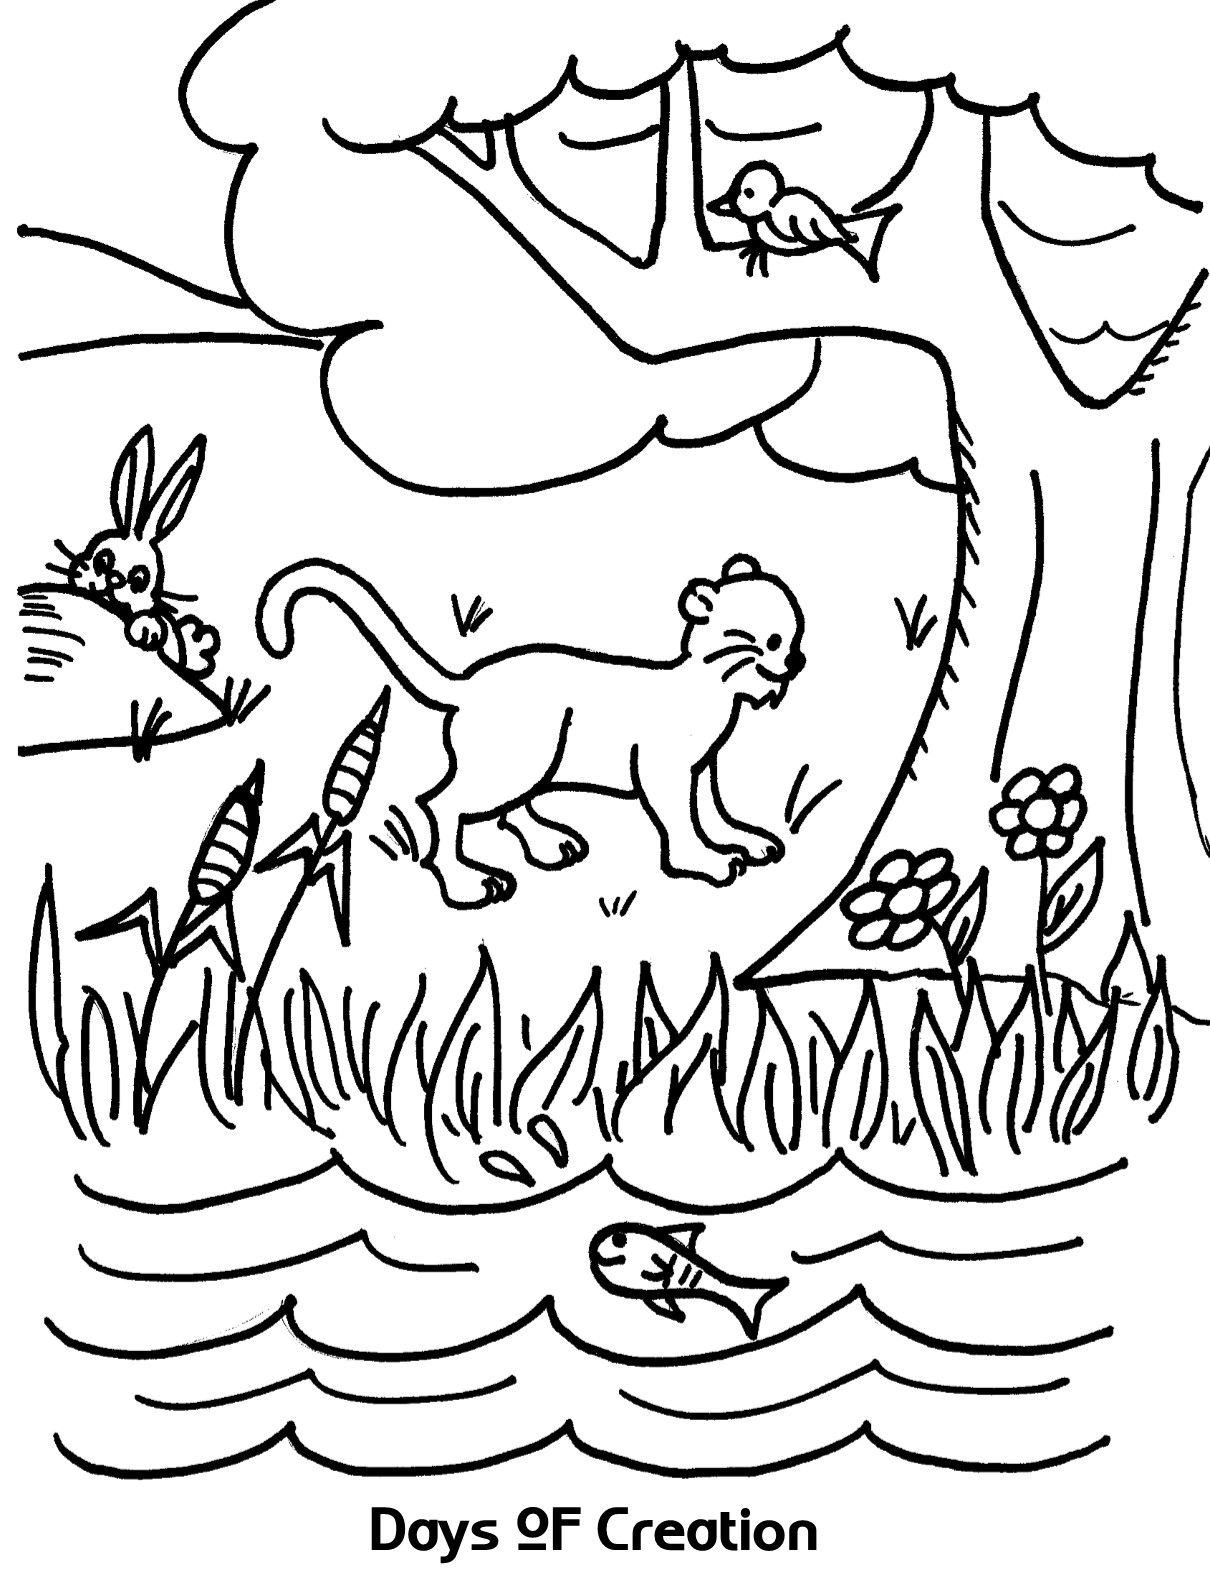 Creation Day 6 Coloring Page Creation Coloring Pages Coloring Pages